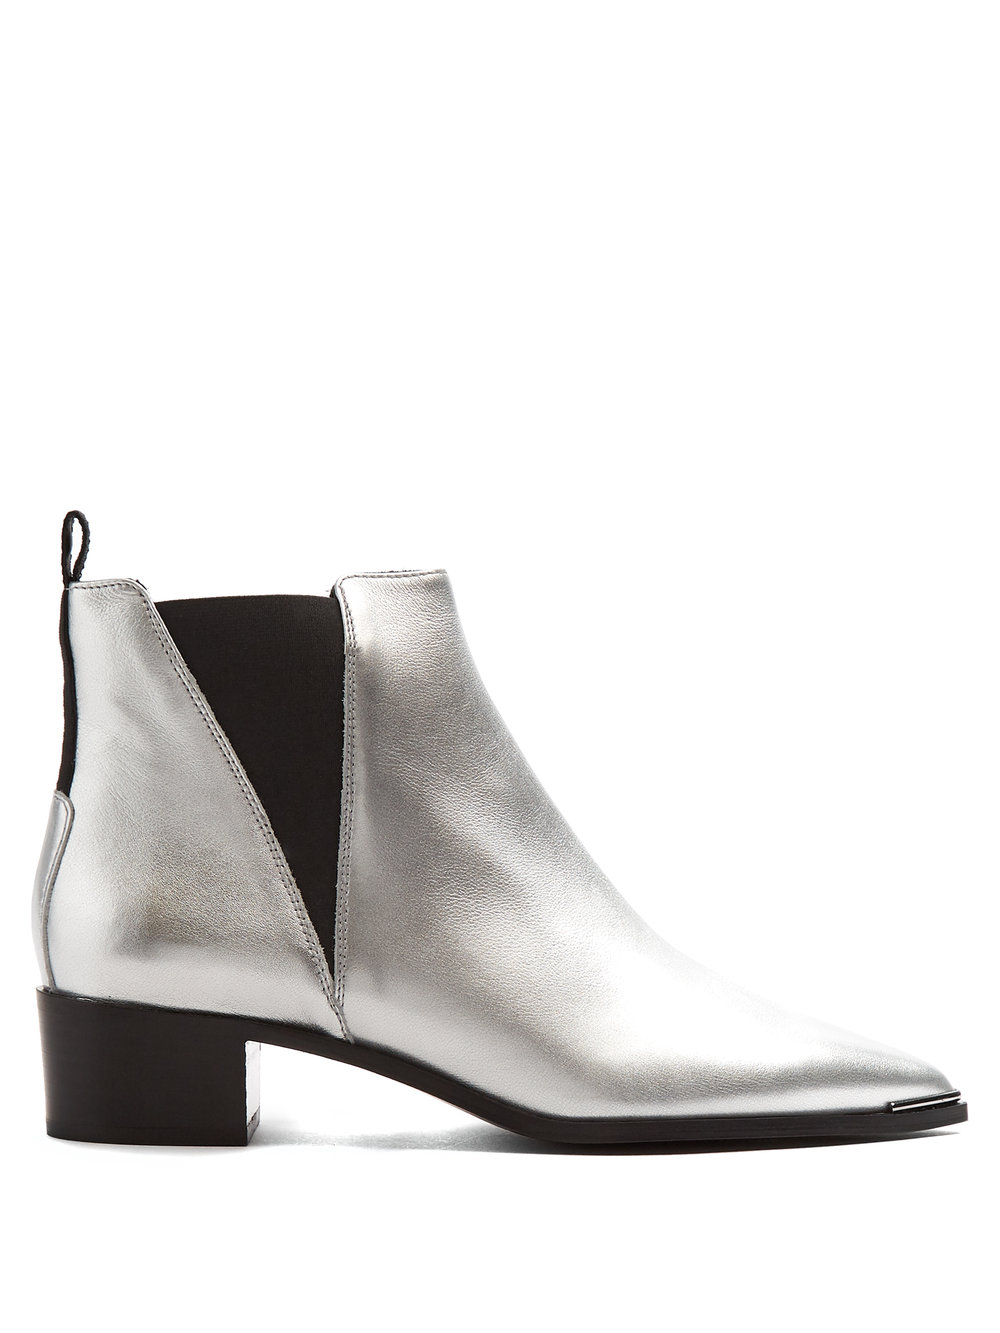 Acne Studios - Striking Silver Leather Boots With Elasticated Side Panels